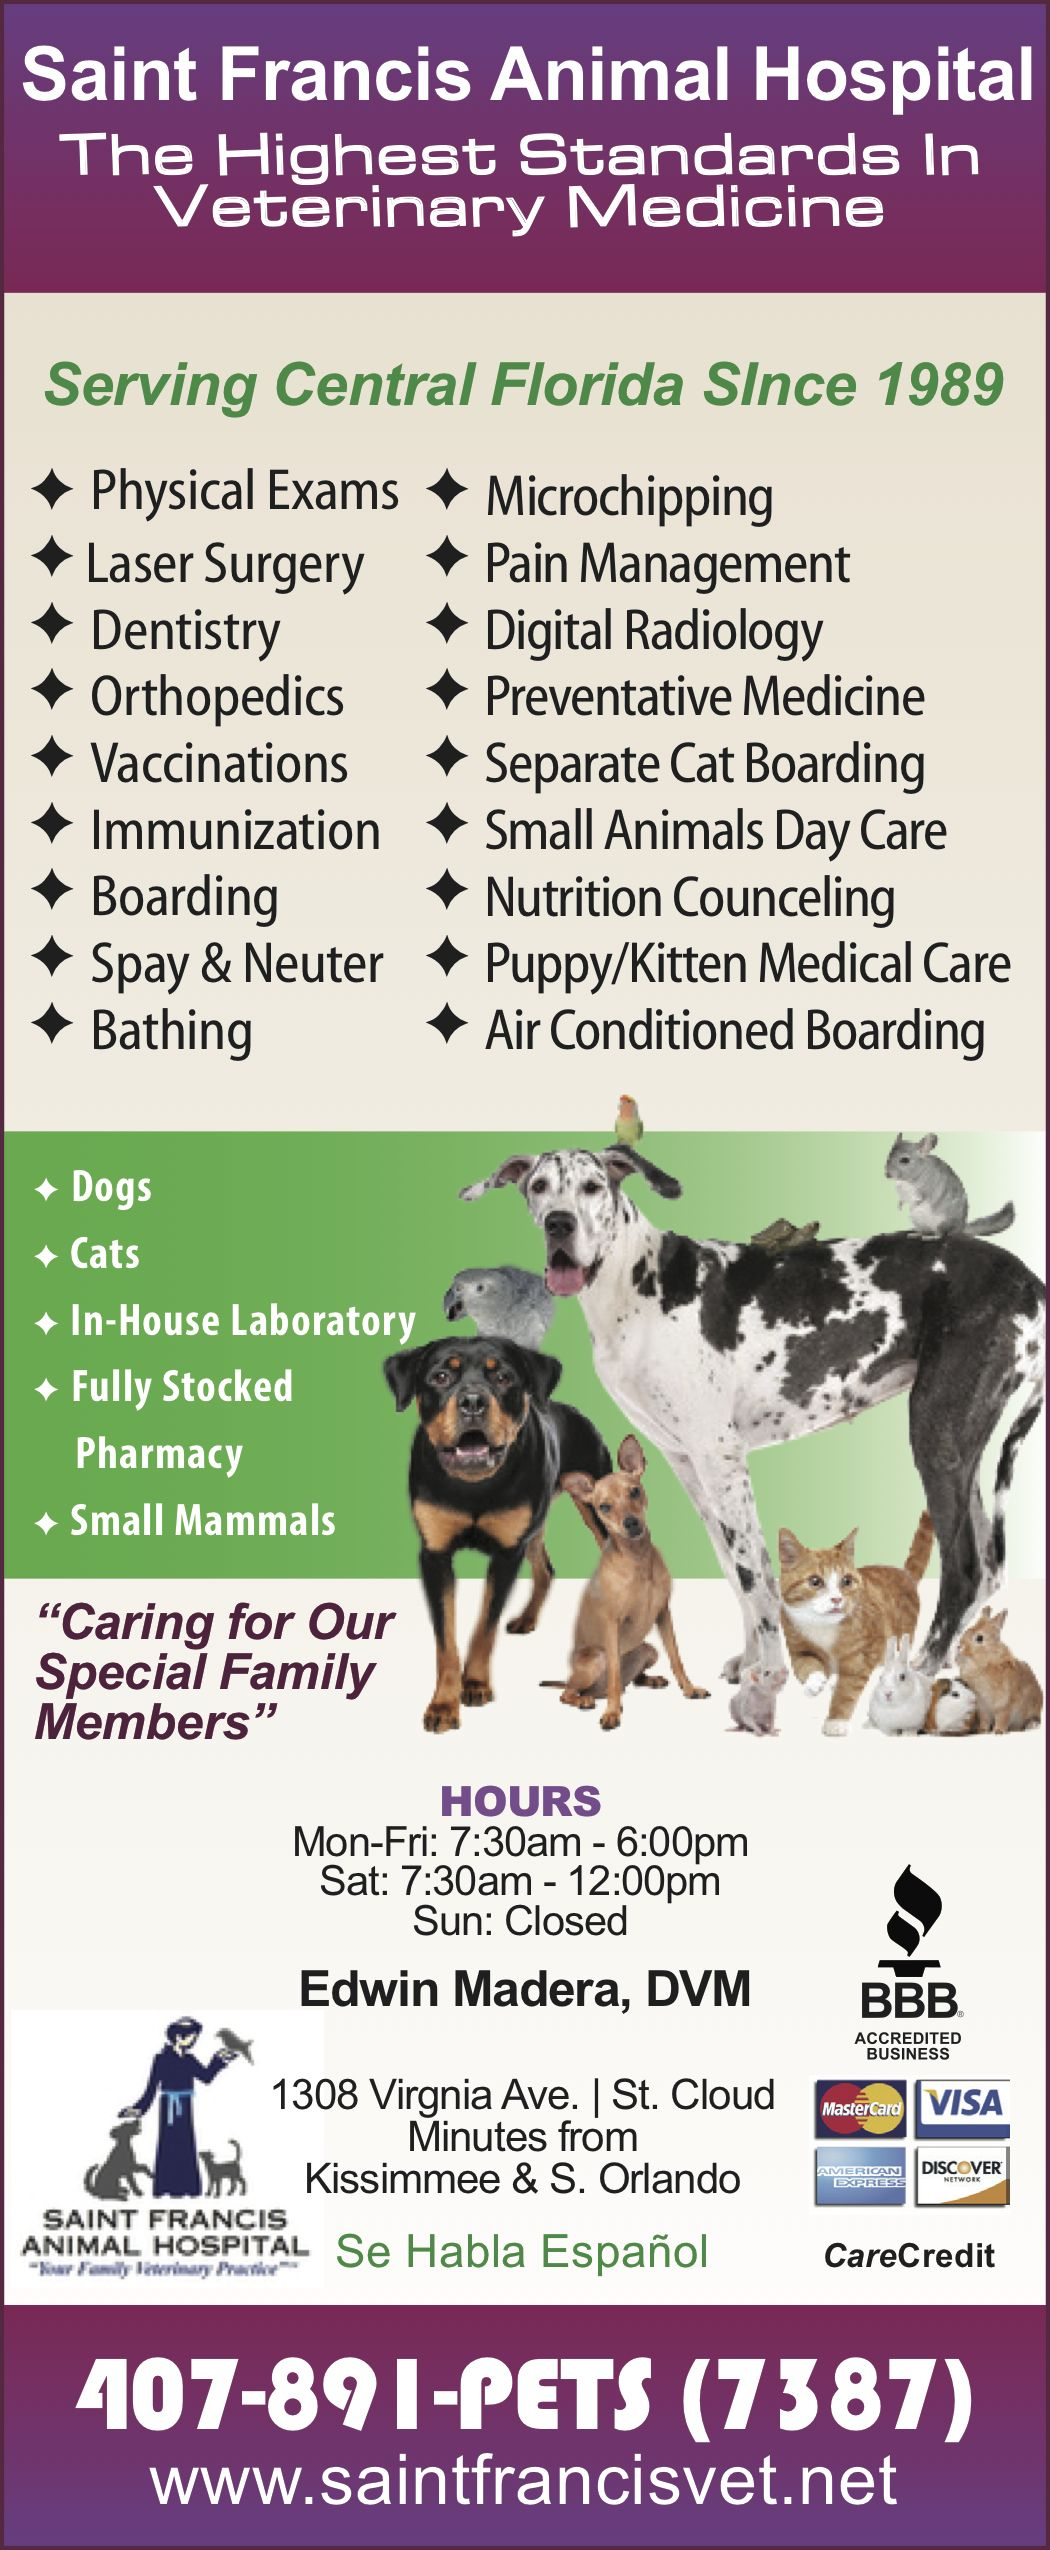 Your Pet Is An Important Part Of Your Family And When He Or She Is Ill You Want The Best Medical Care Availabl Animal Hospital Preventive Medicine Medical Care